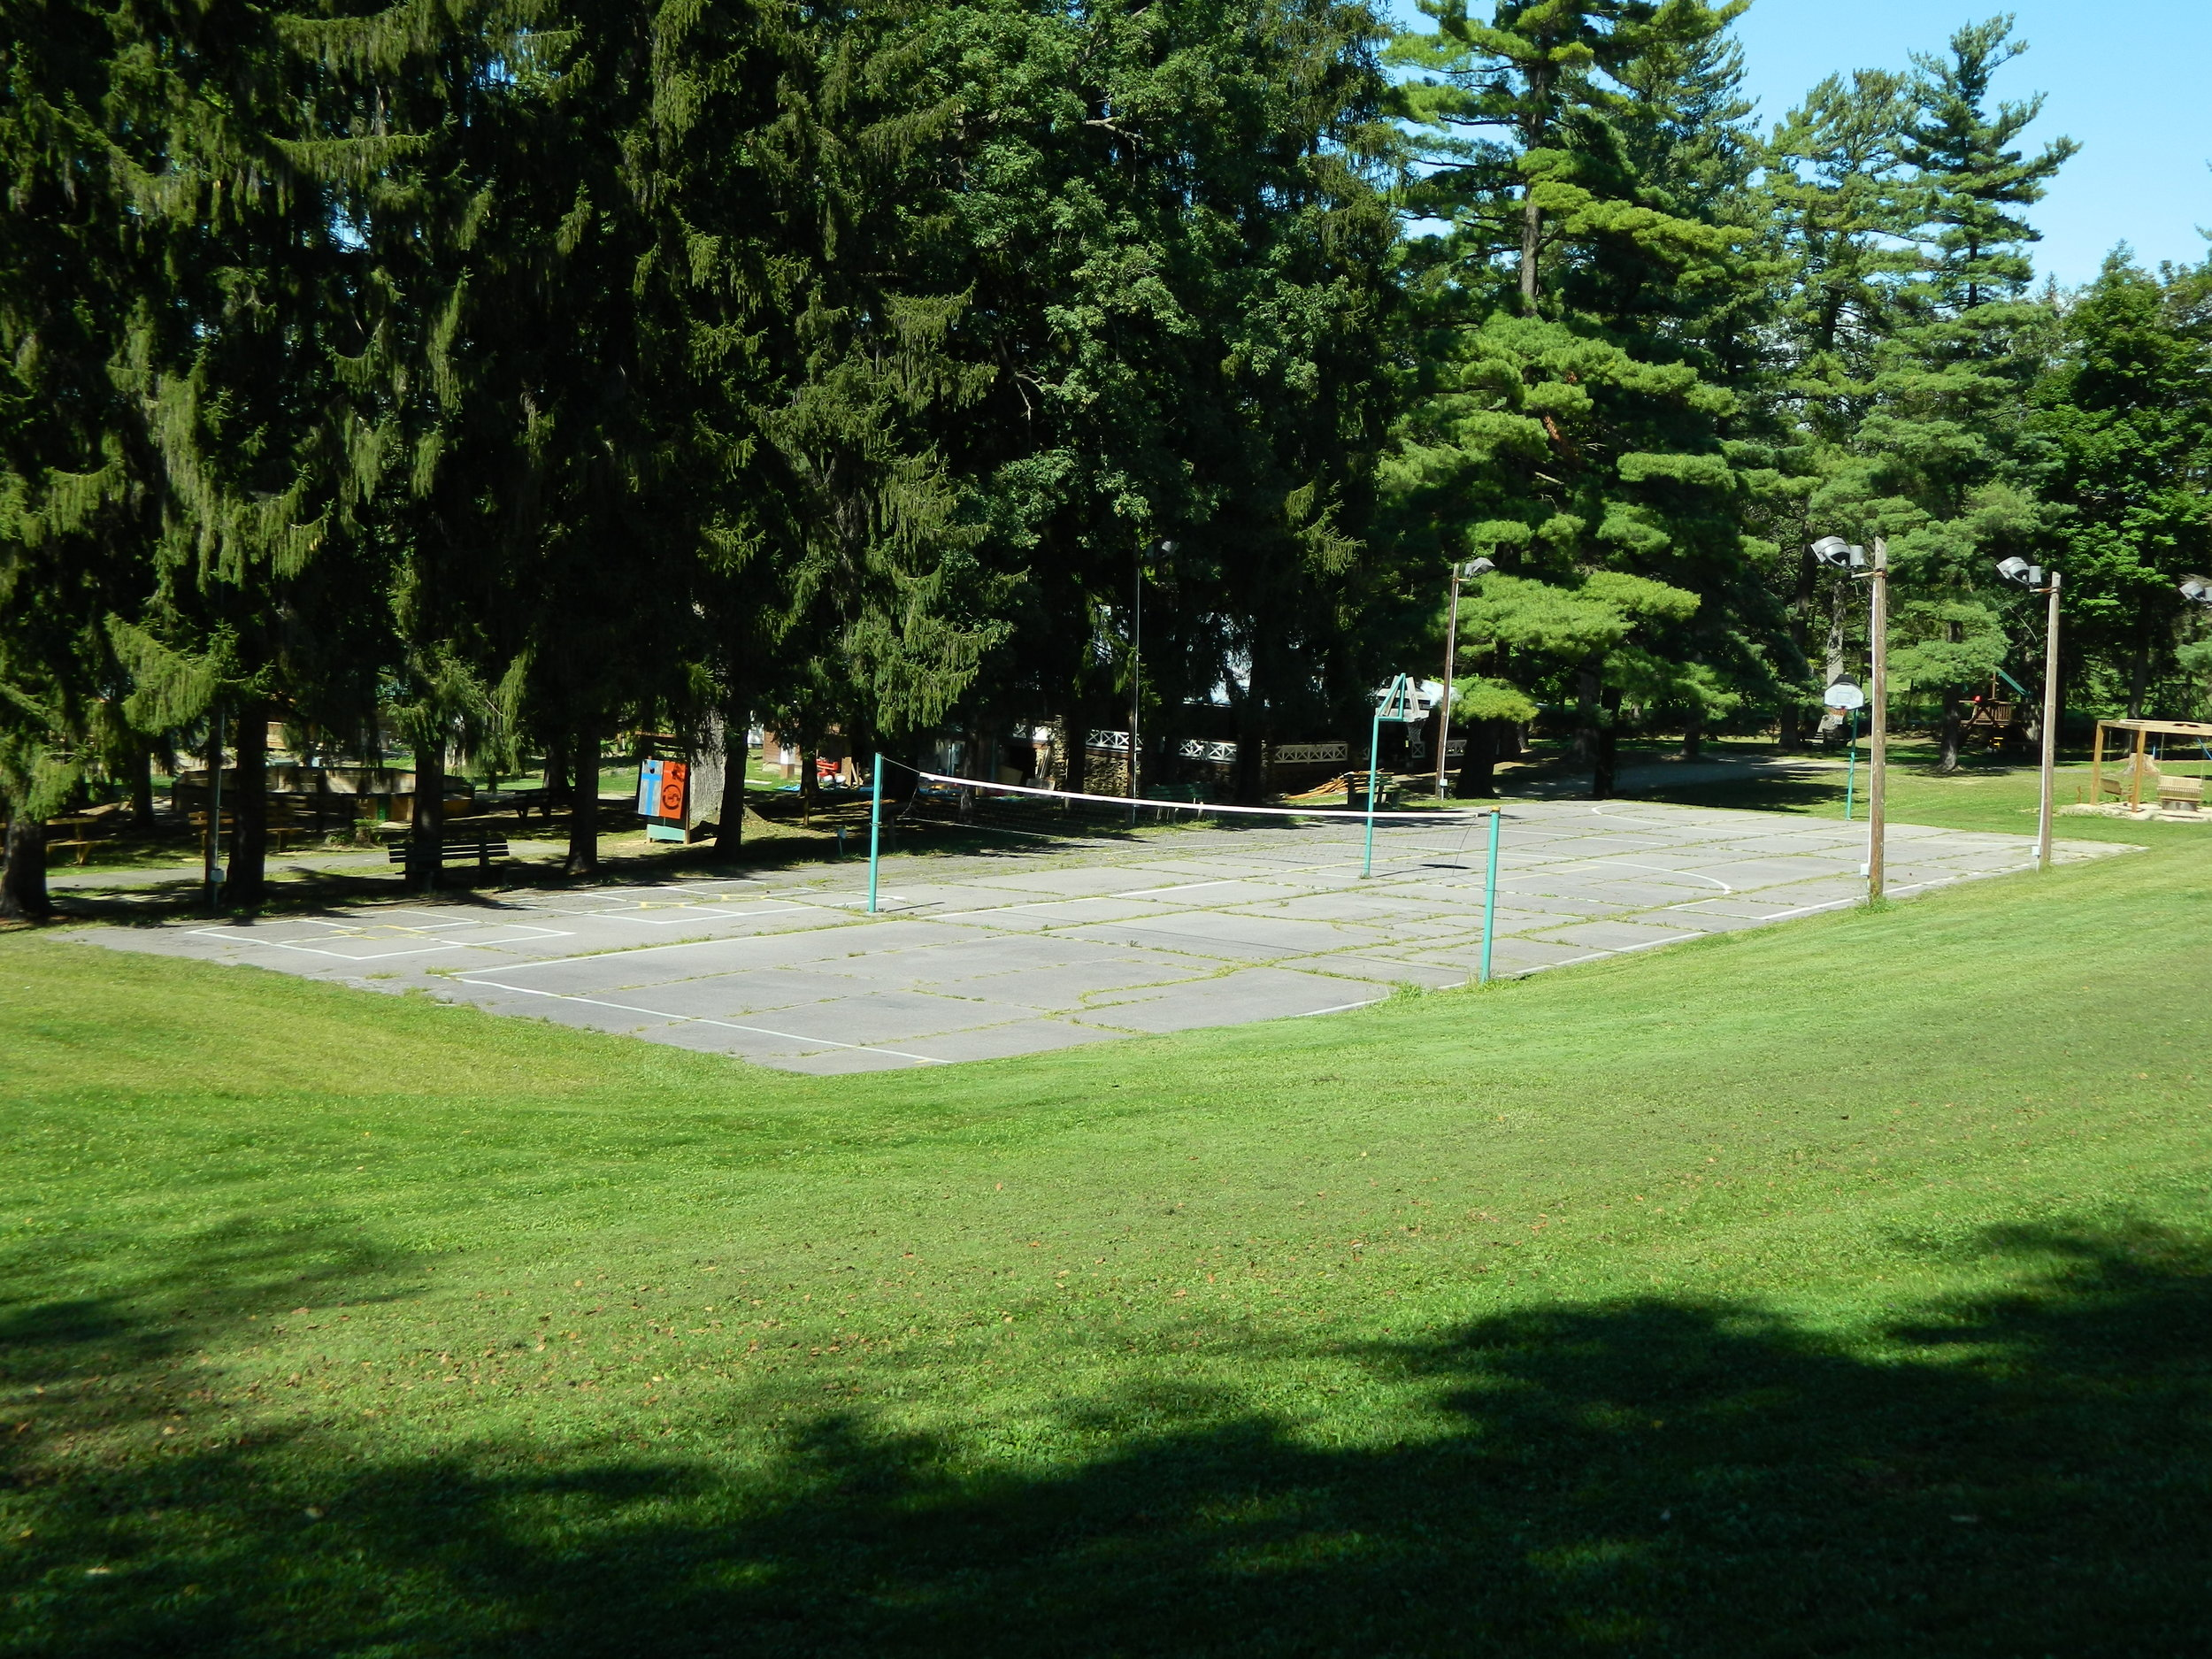 Basketball/Volleyball/4 Square Court